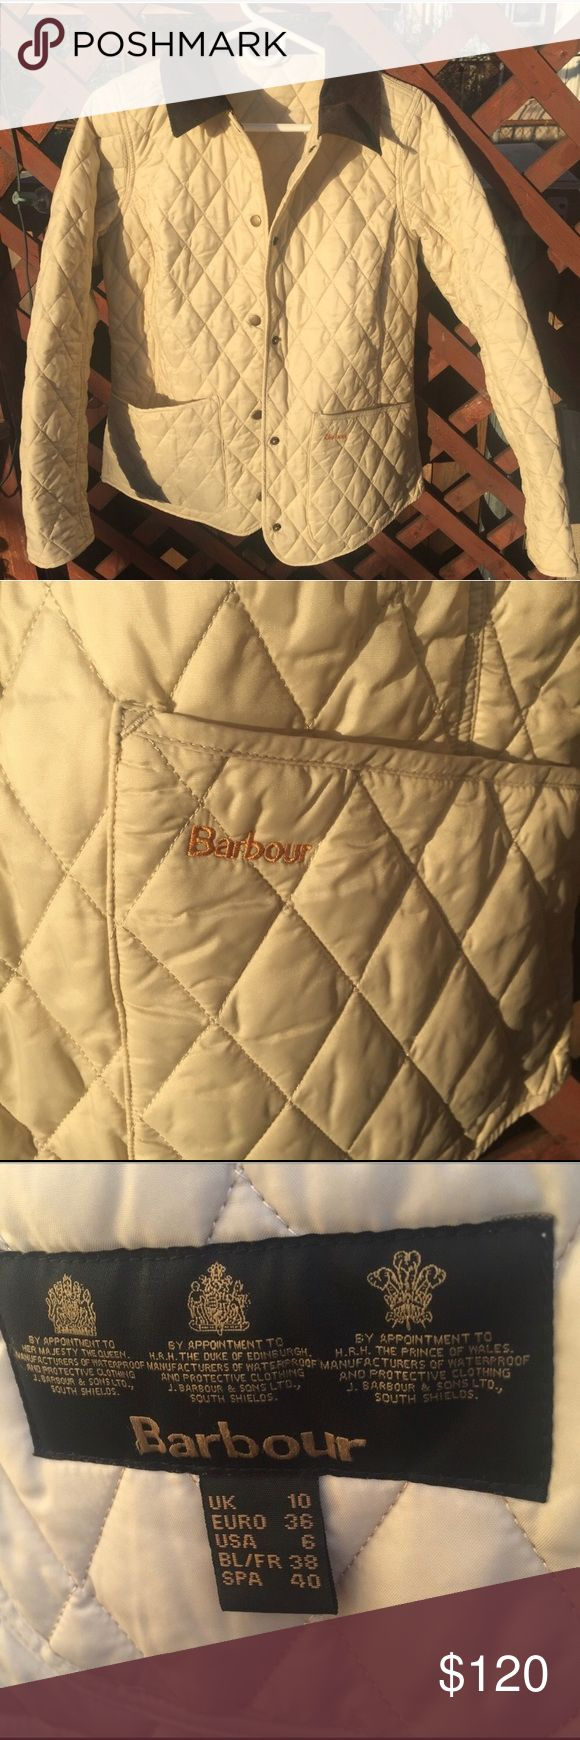 Barbour quilted jacket perfect condition Perfect condition, like new, beautiful color and curdoroy collar Barbour Jackets & Coats